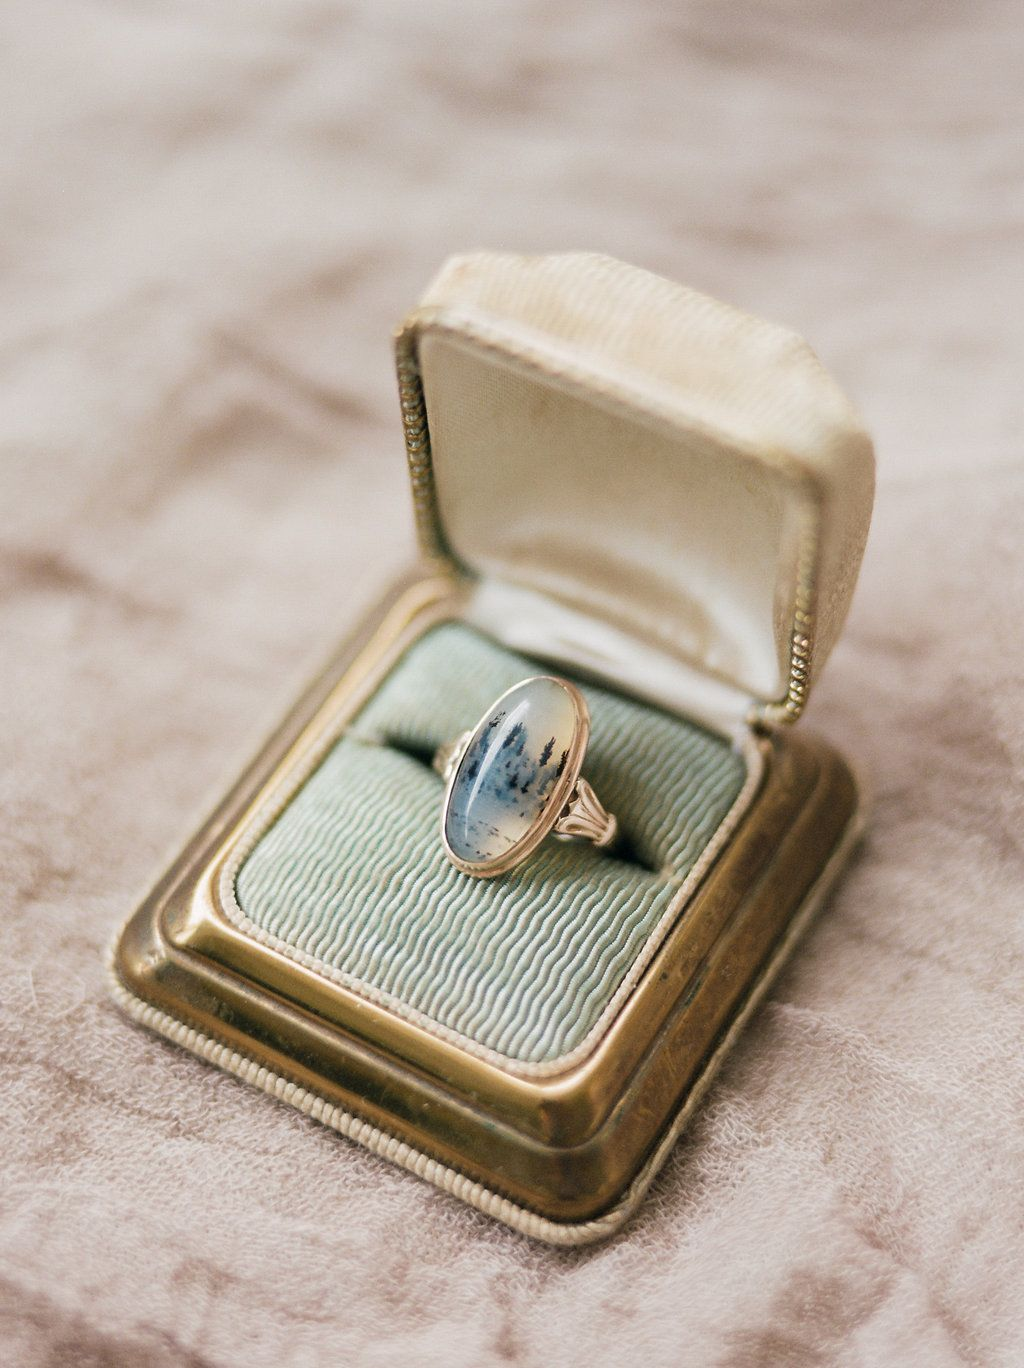 unique rings agate wedding solitaire pin engagement sterling enamel blue gift man silver ring